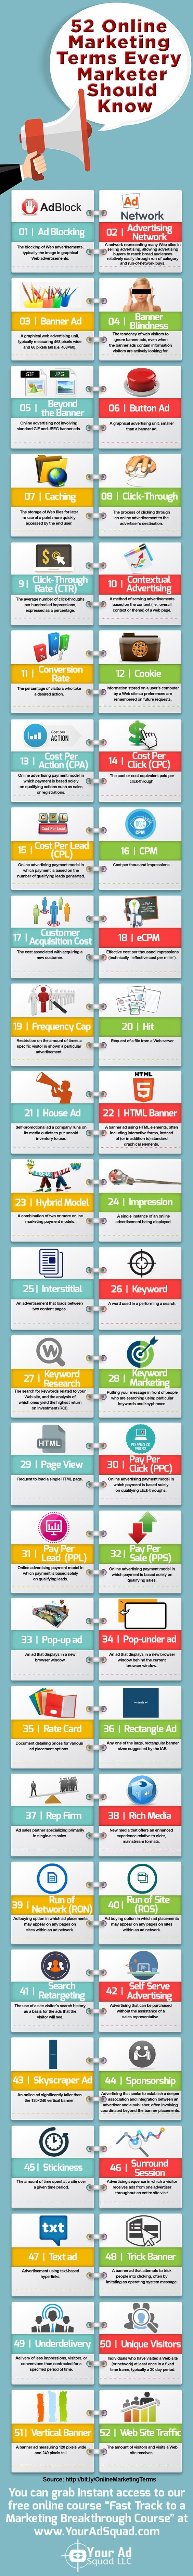 52 Online Marketing Terms A Marketer Should Know [Infographic]